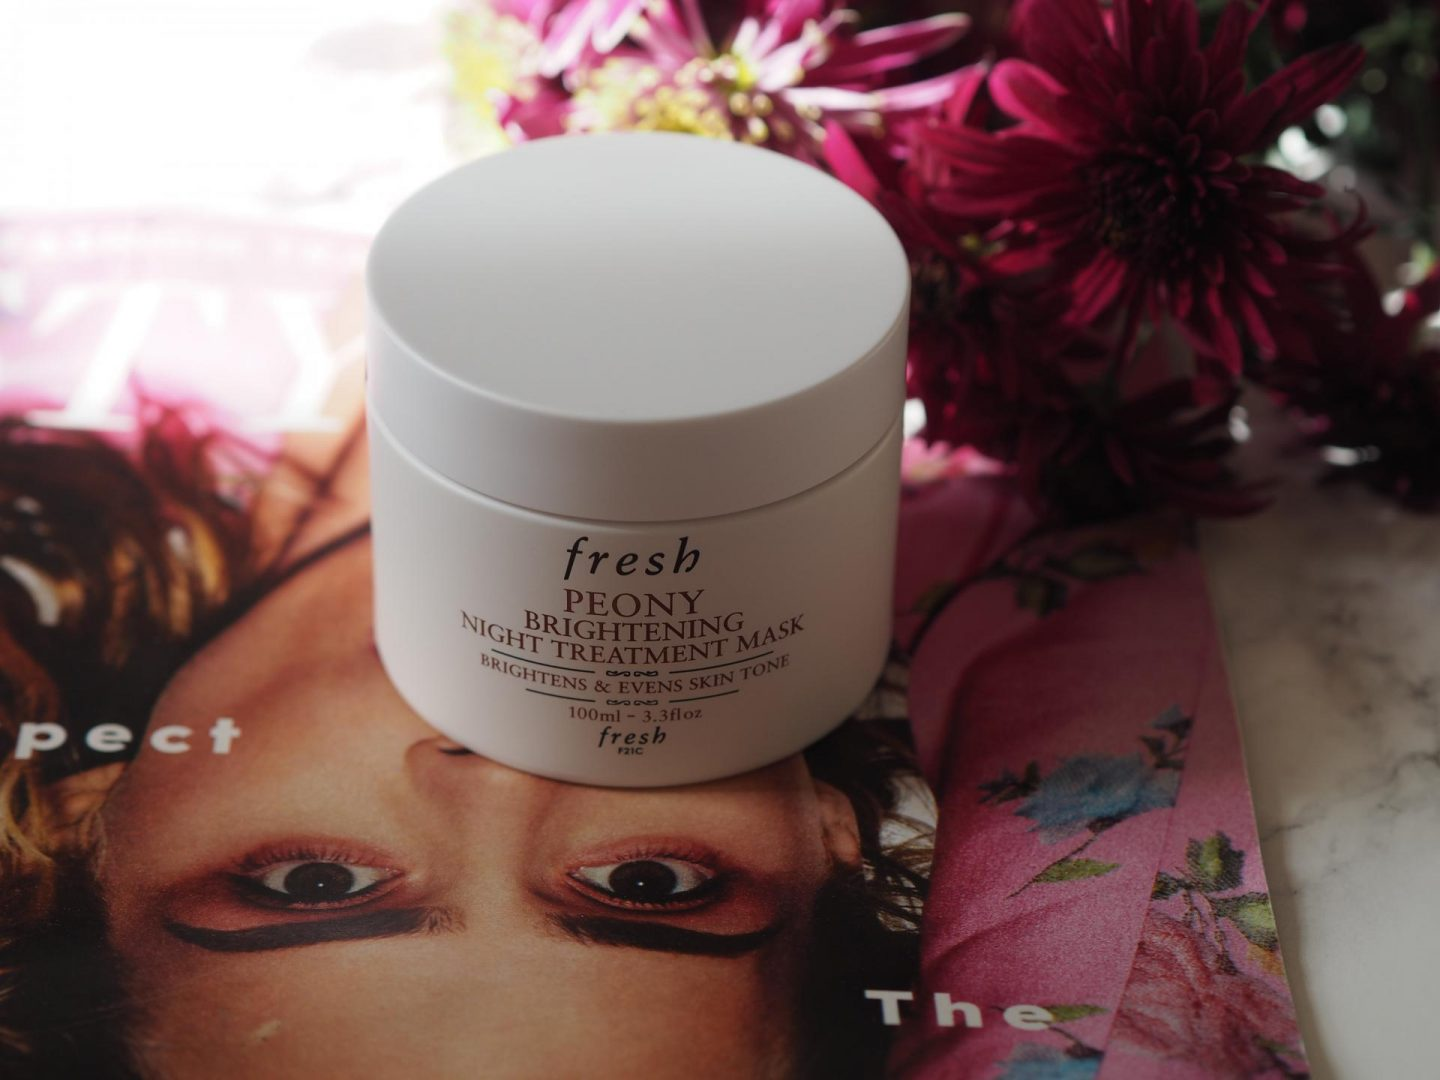 Flower Power - Product: Fresh Peony Brightening Night Treatment Mask